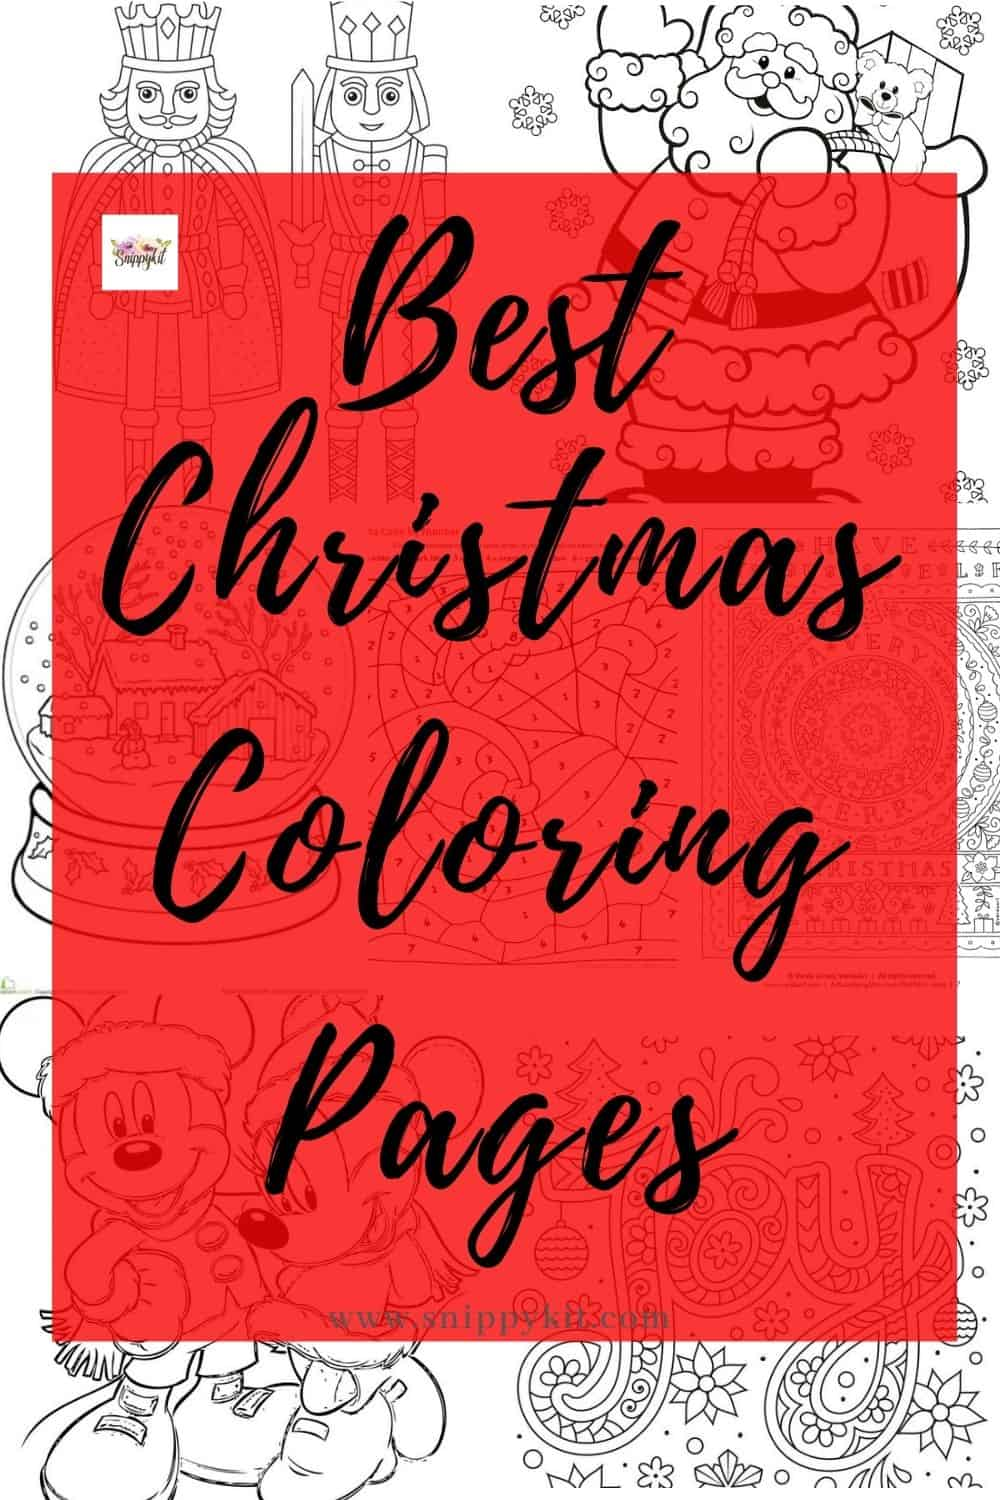 20+ FREE Printable Christmas Coloring Pages for Adults & Kids – something for everyone! Christmas trees, presents, Mickey Mouse, Santa Claus, and more!